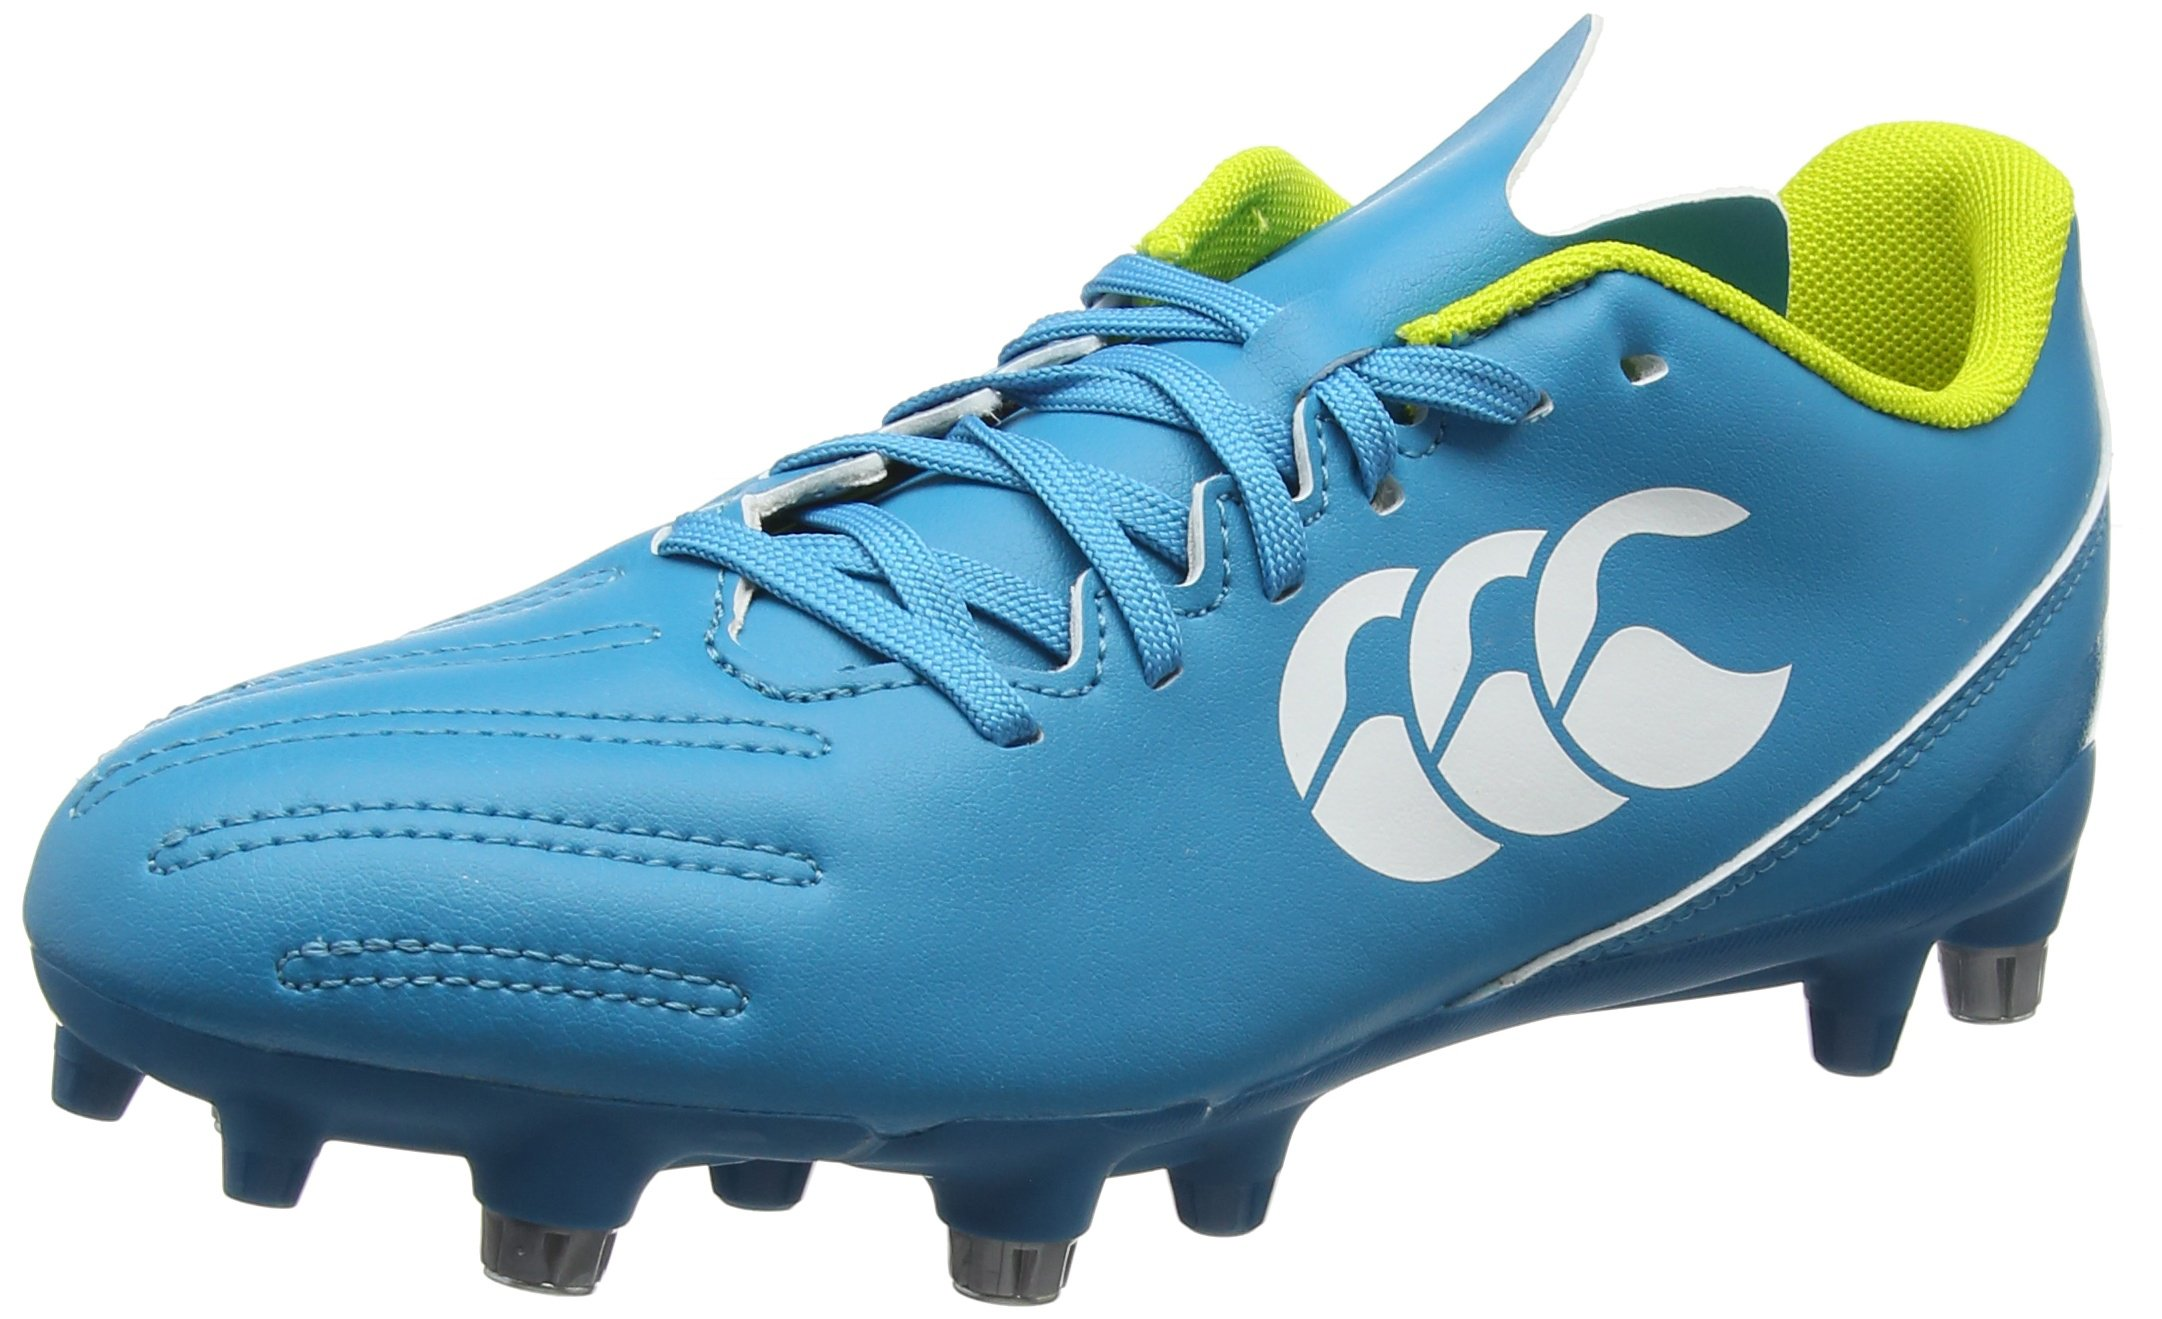 De Canterbury 2 Rugby 0 5 Control GroundChaussures Soft HommeTurquoisecarribean Sea41 Eu BdCoexrW